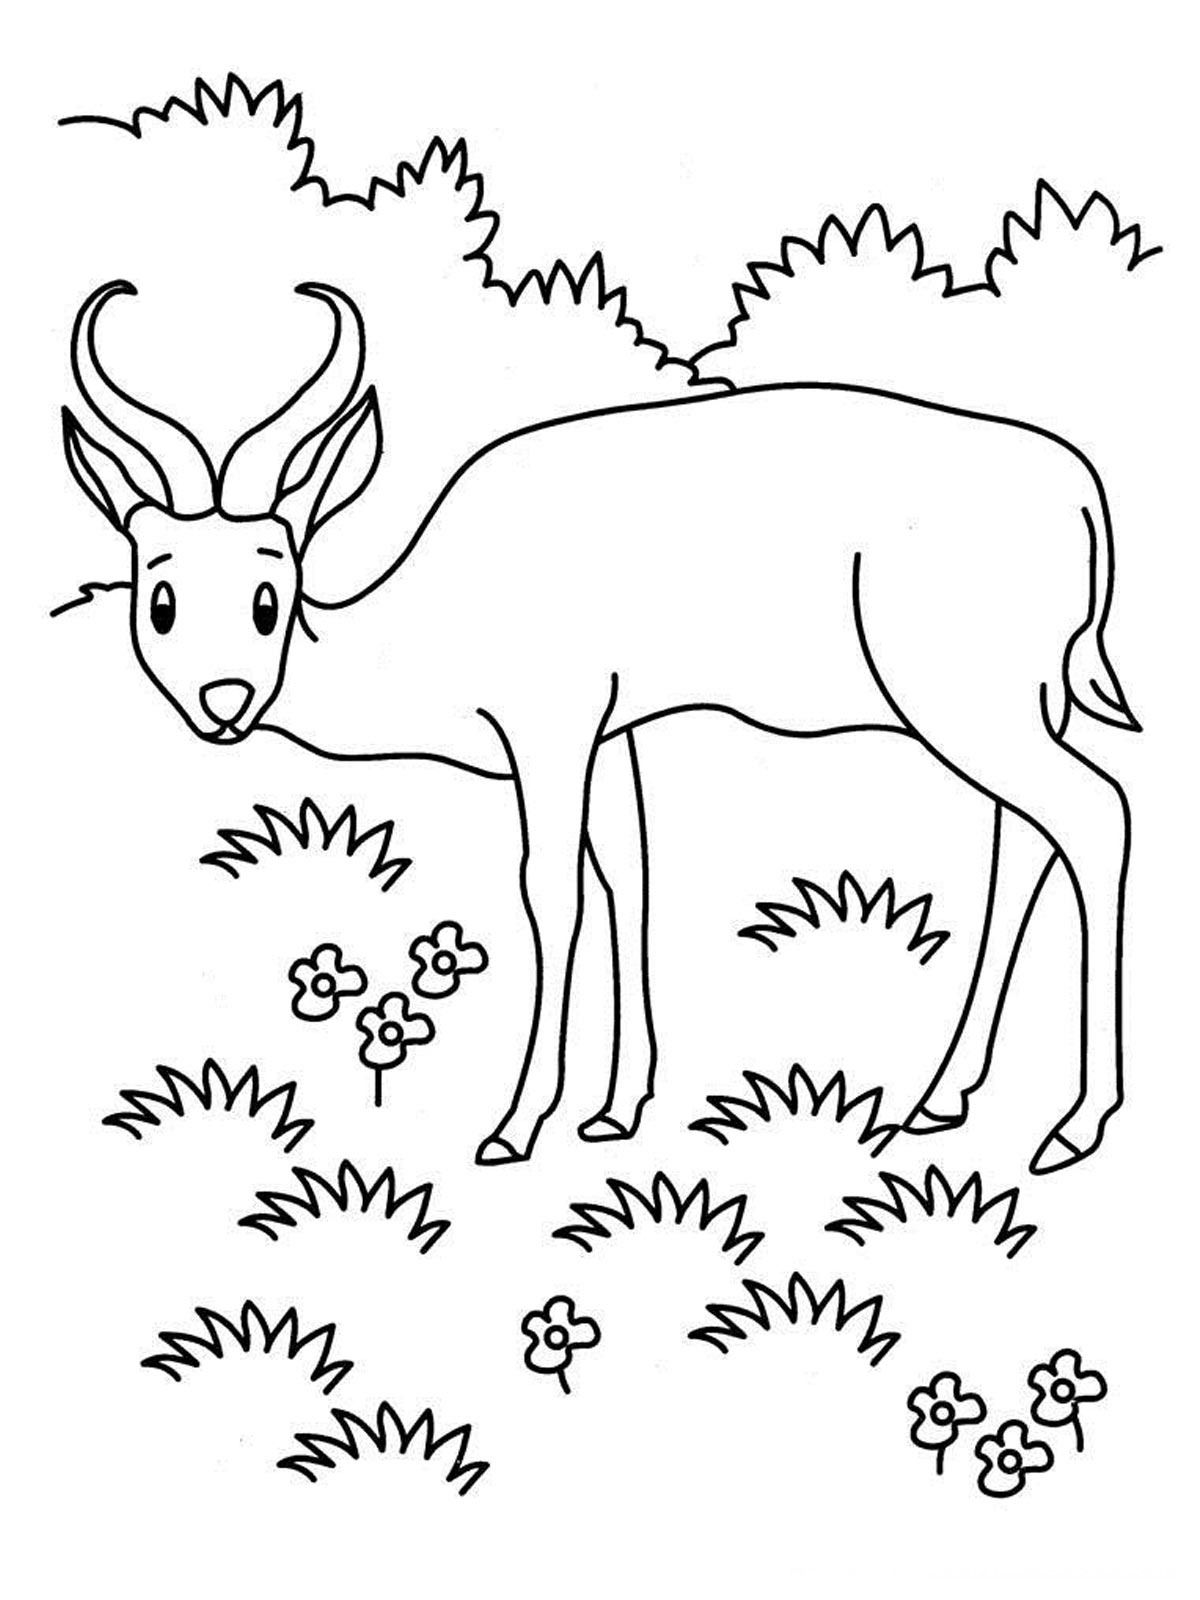 coloring pages of grassland animals grassland animals coloring pages bubakidscom animals of coloring grassland pages